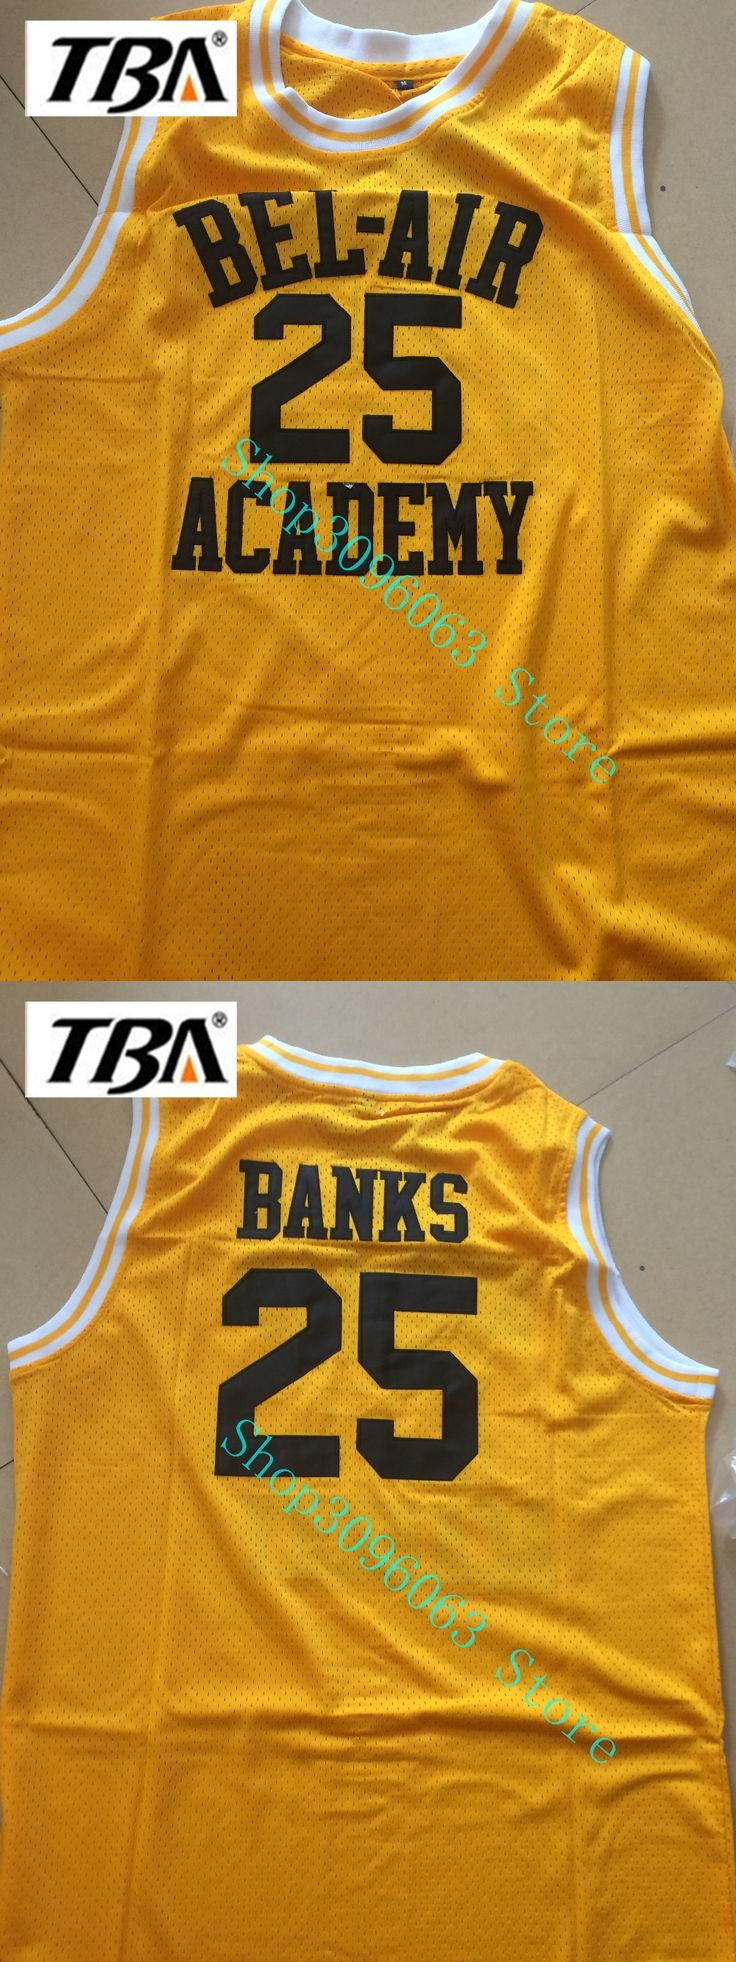 NEW Academy Prince of BEL AIR Jersey, #25 Banks Cheap Film Throwback Basketball Jerseys,Stitched Movie retro Yellow jersey